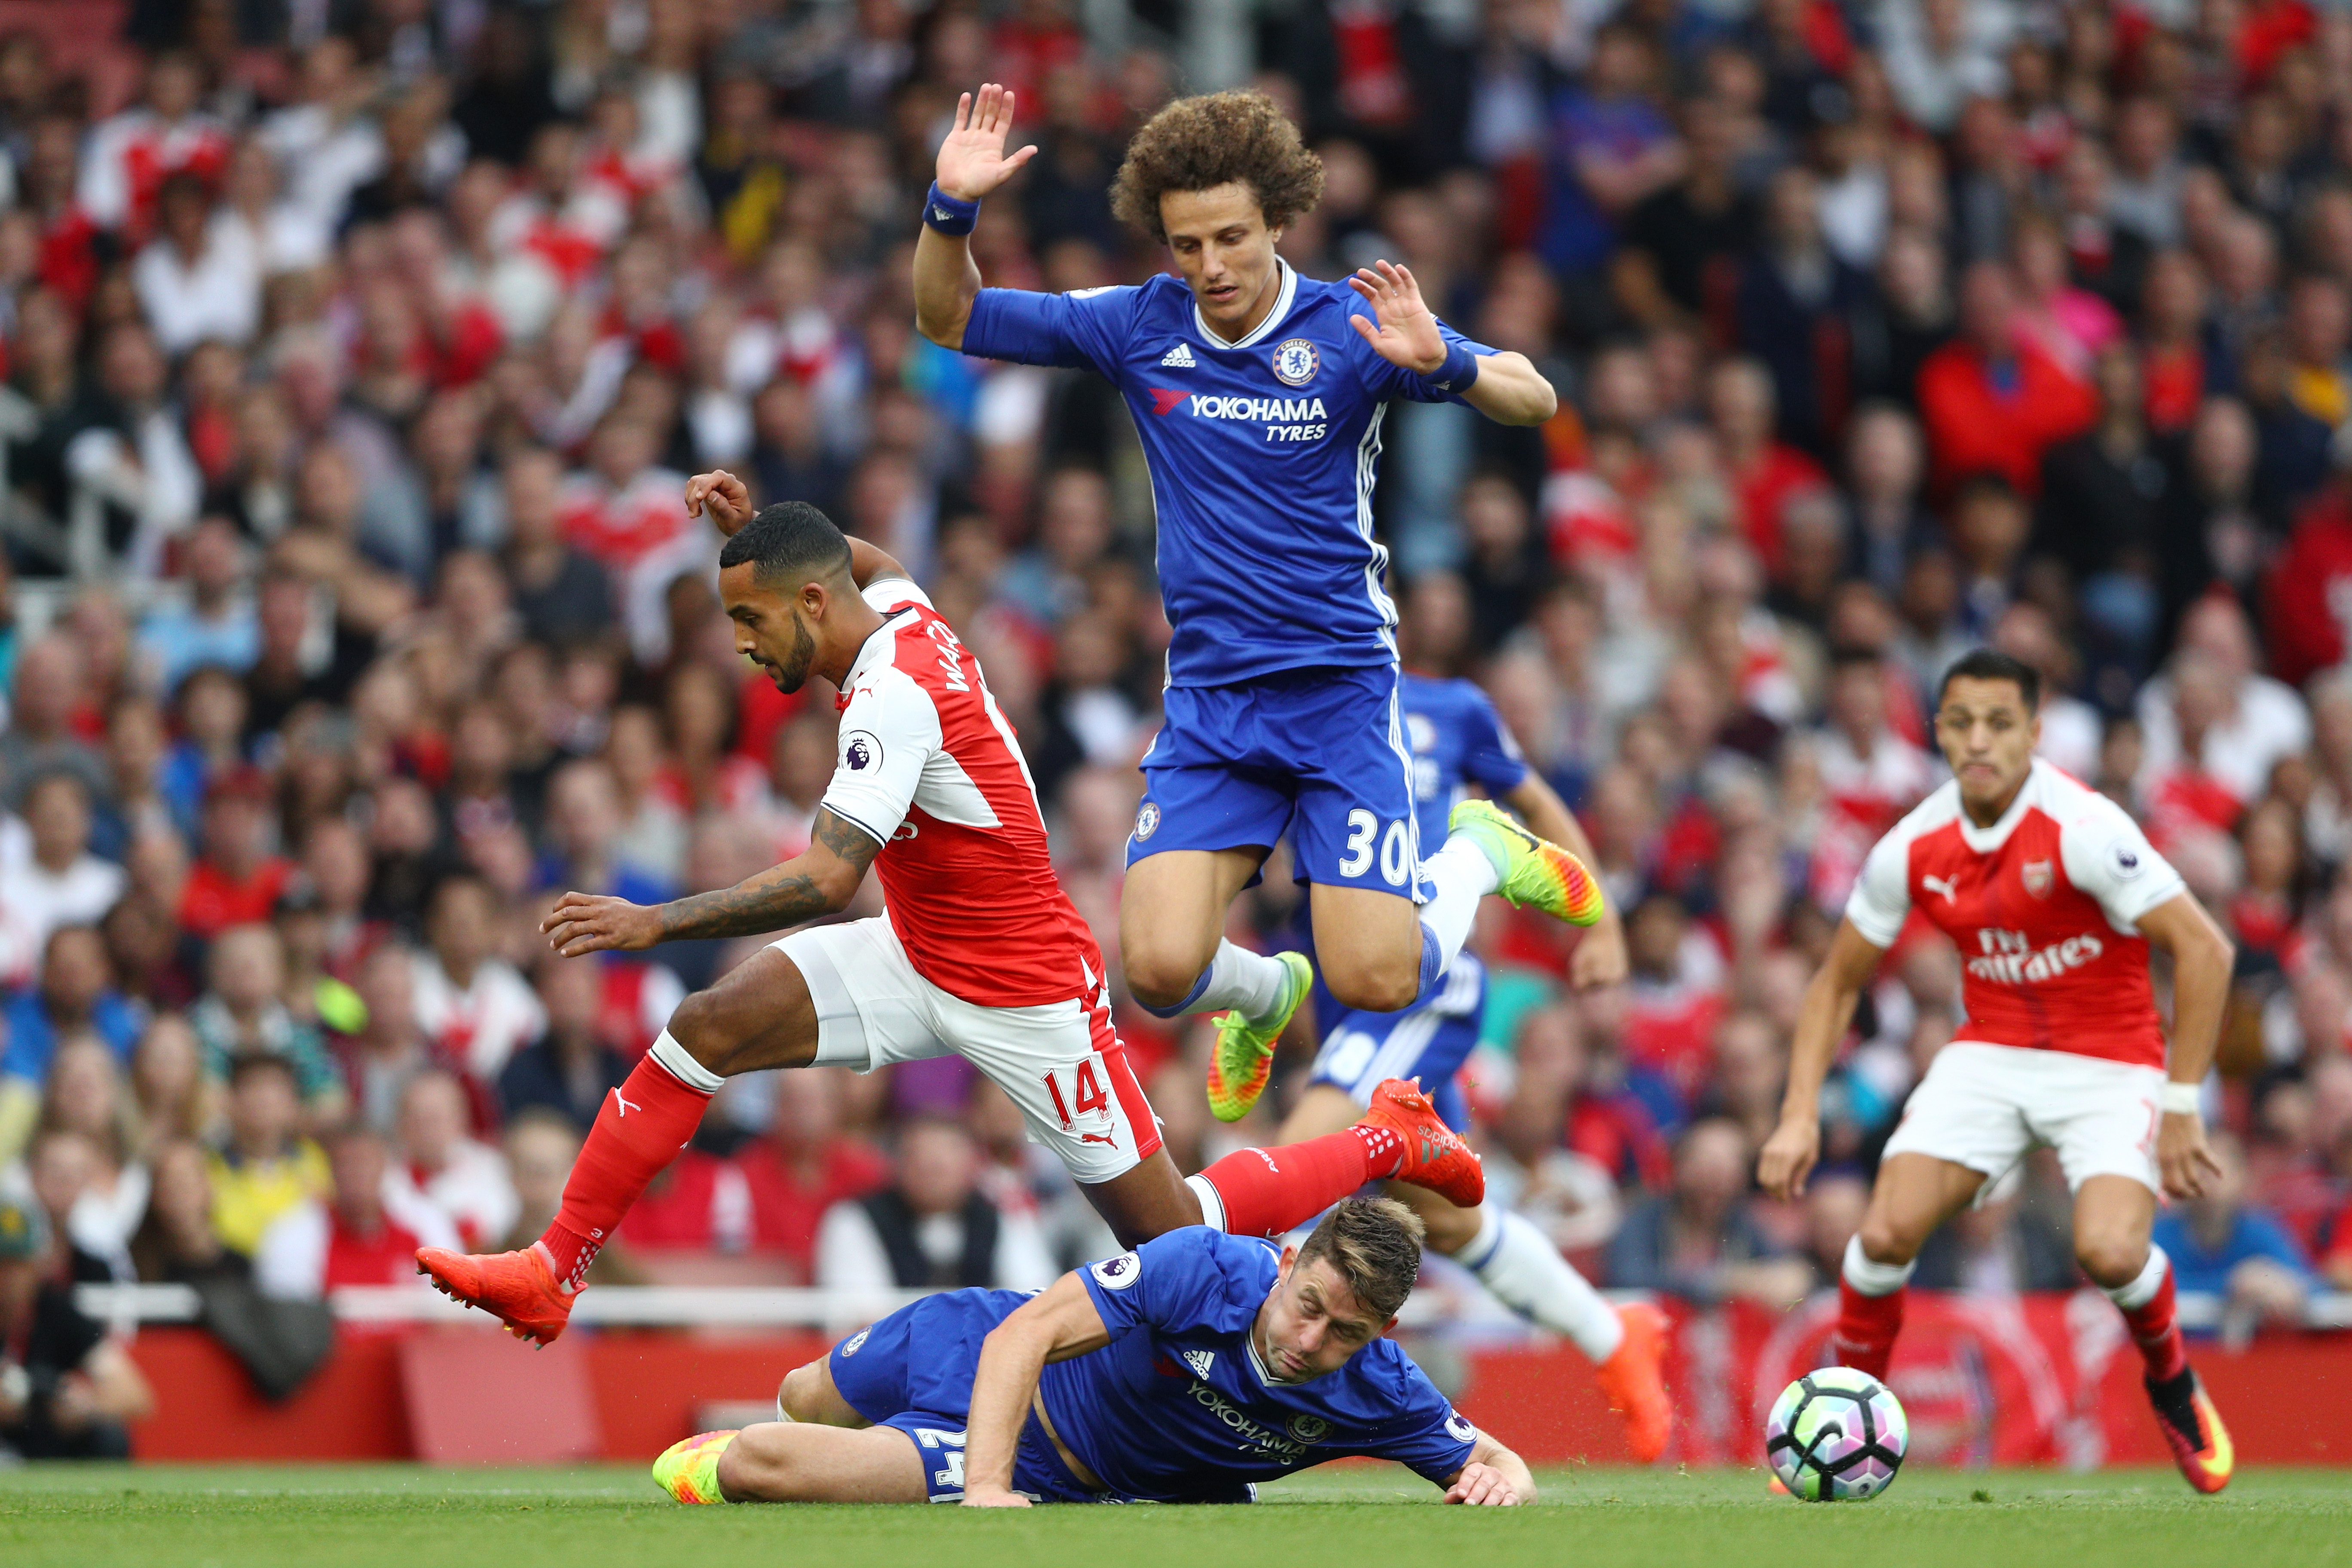 LONDON, ENGLAND - SEPTEMBER 24: Theo Walcott of Arsenal (L) is fouled by Gary Cahill of Chelsea (C) during the Premier League match between Arsenal and Chelsea at the Emirates Stadium on September 24, 2016 in London, England. (Photo by Paul Gilham/Getty Images)